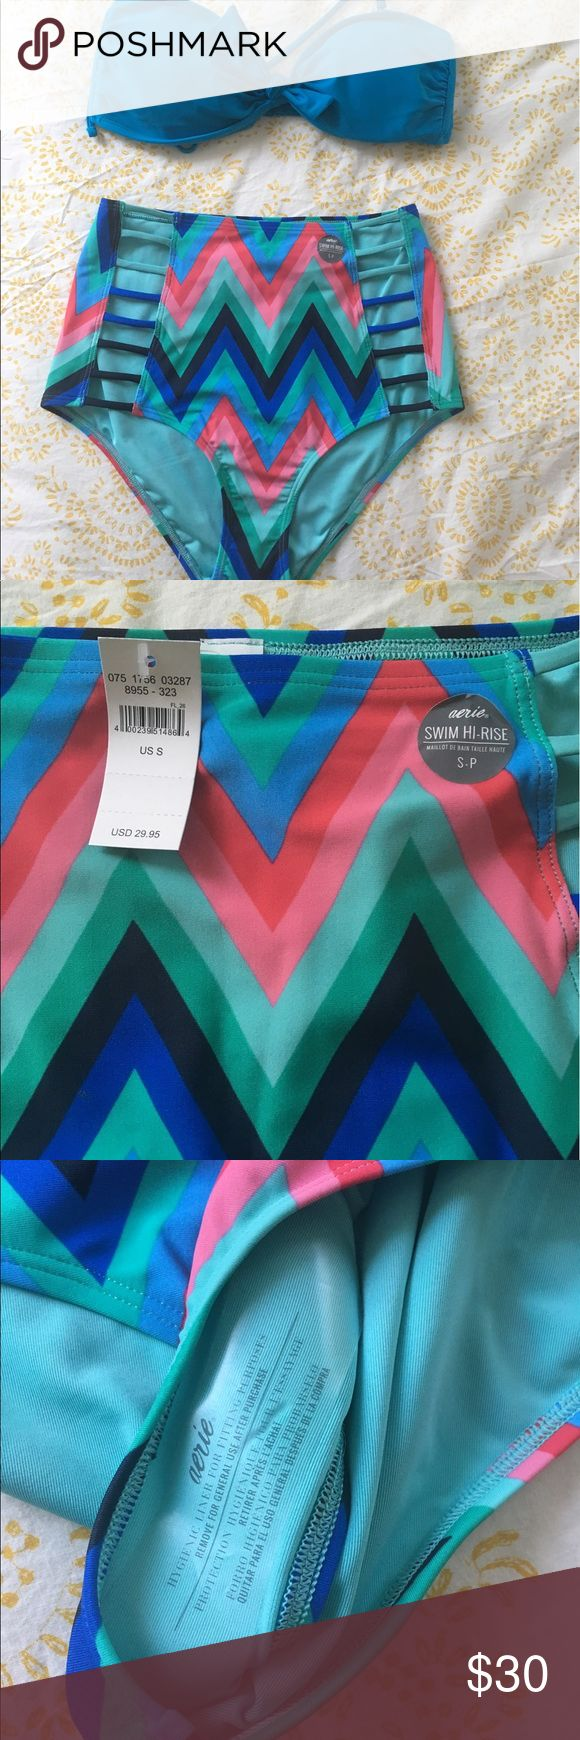 aerie cheveron high waisted swimsuit small. NWT. The perfect high rise swimsuit for a petite babe! Bottom is a small, still has tags and hygienic liner. Never worn. Top is a medium, new with no tags (took them off when I bought it). aerie Swim